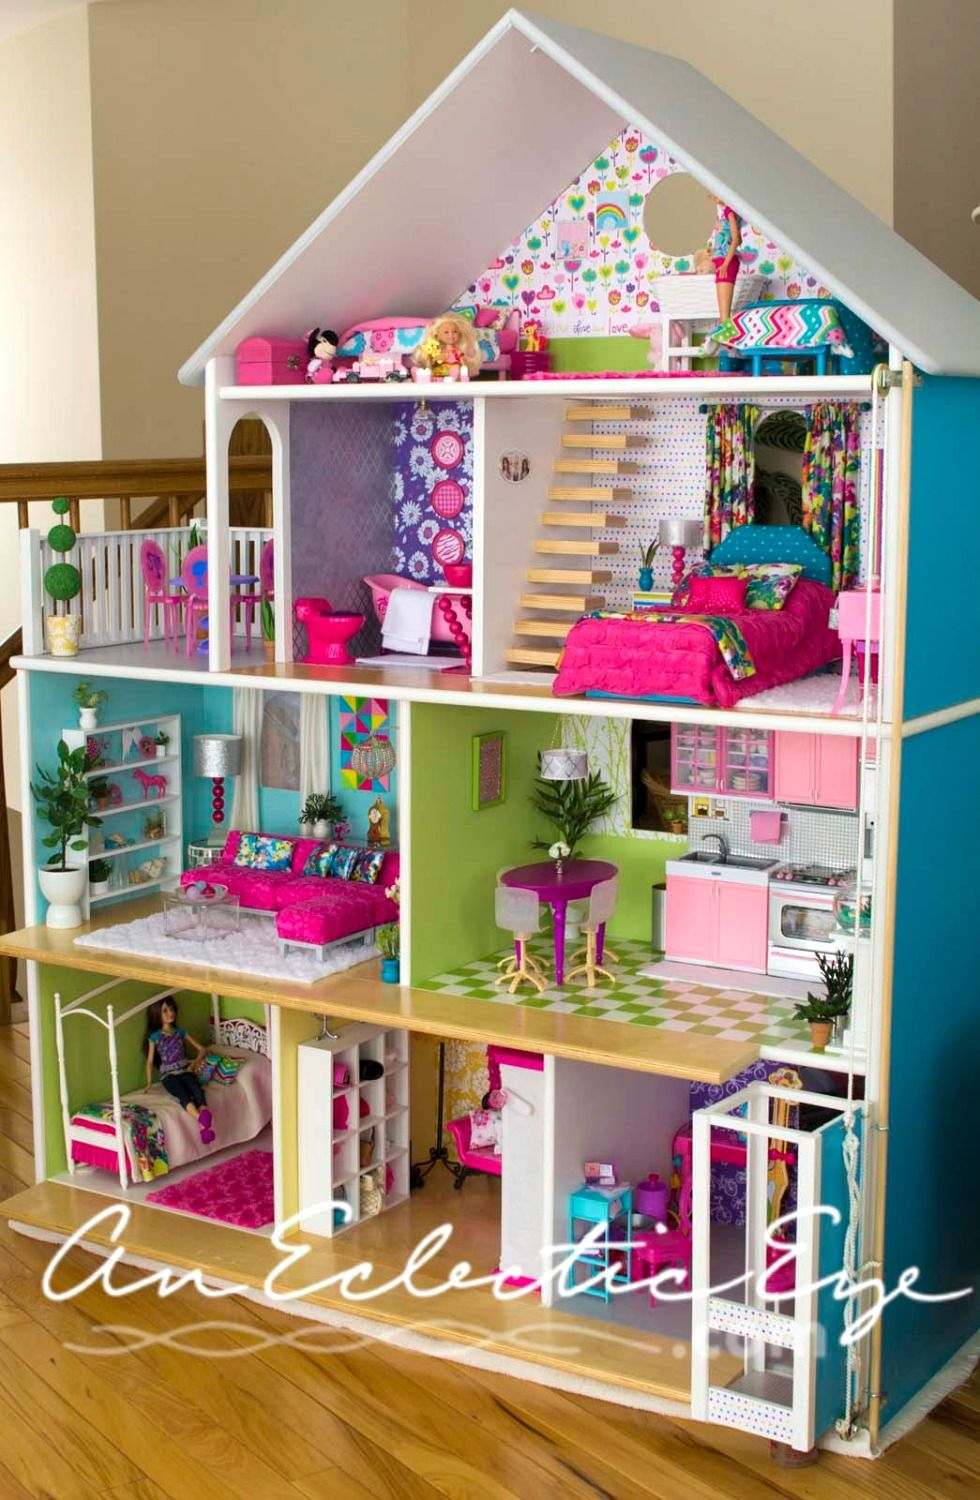 An Eclectic Eye Diy Doll House Plans Diy Barbie House Diy Barbie Furniture